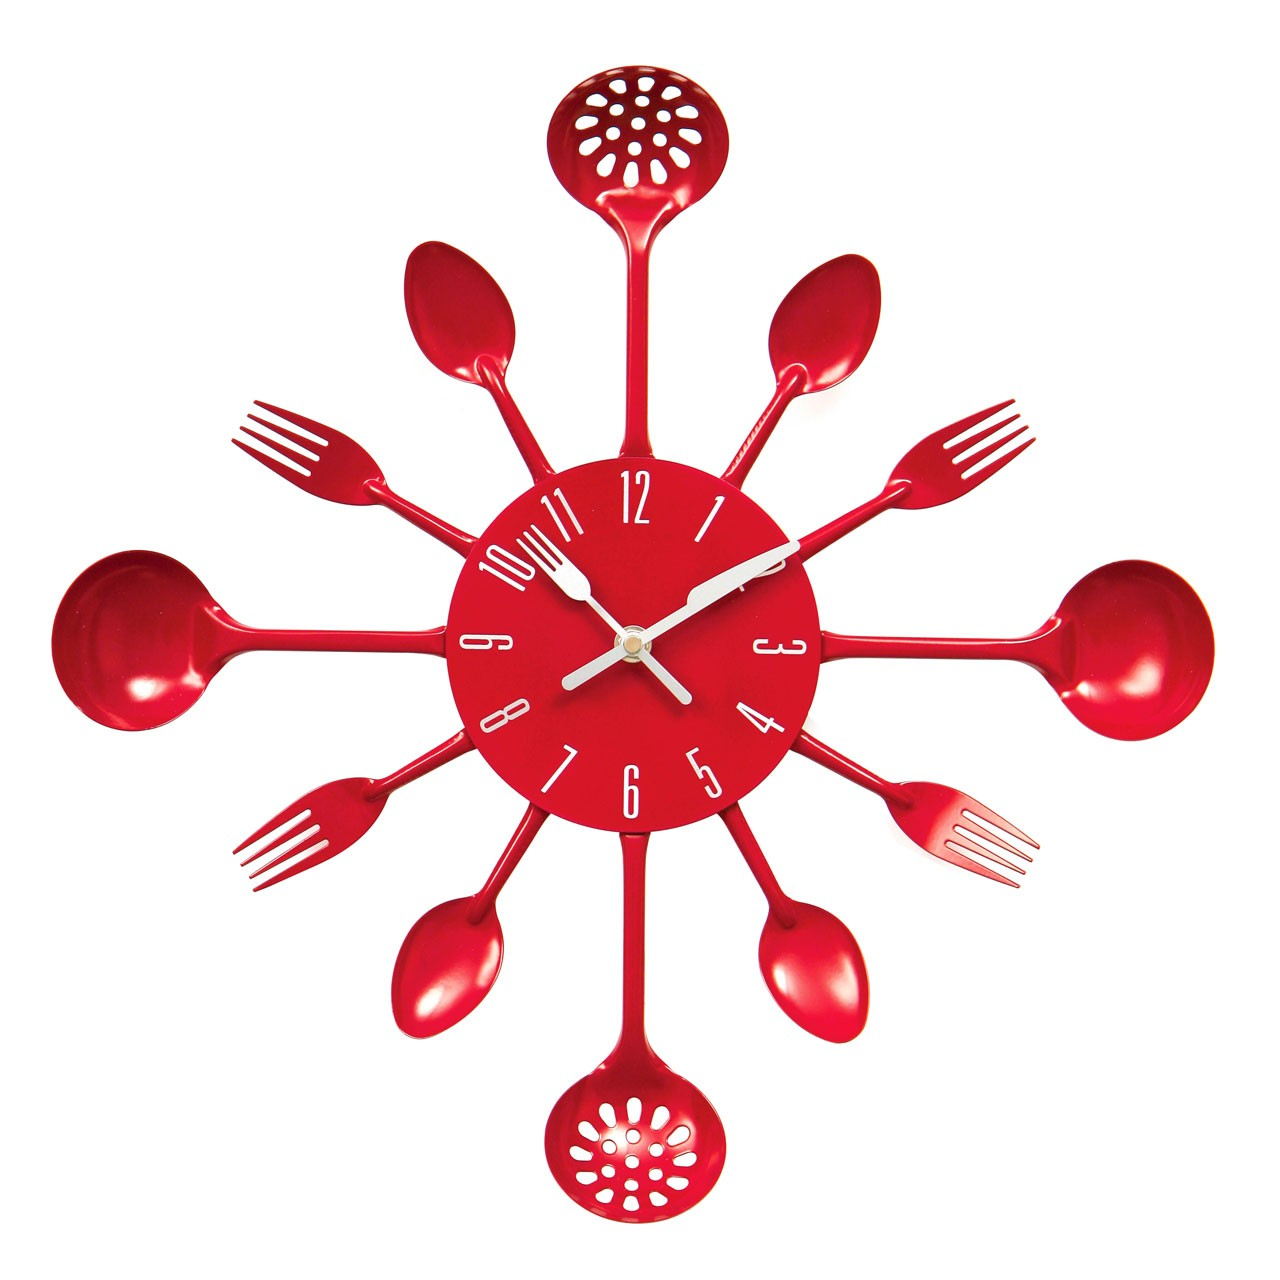 Prime Furnishing Cutlery Wall Clock - Red